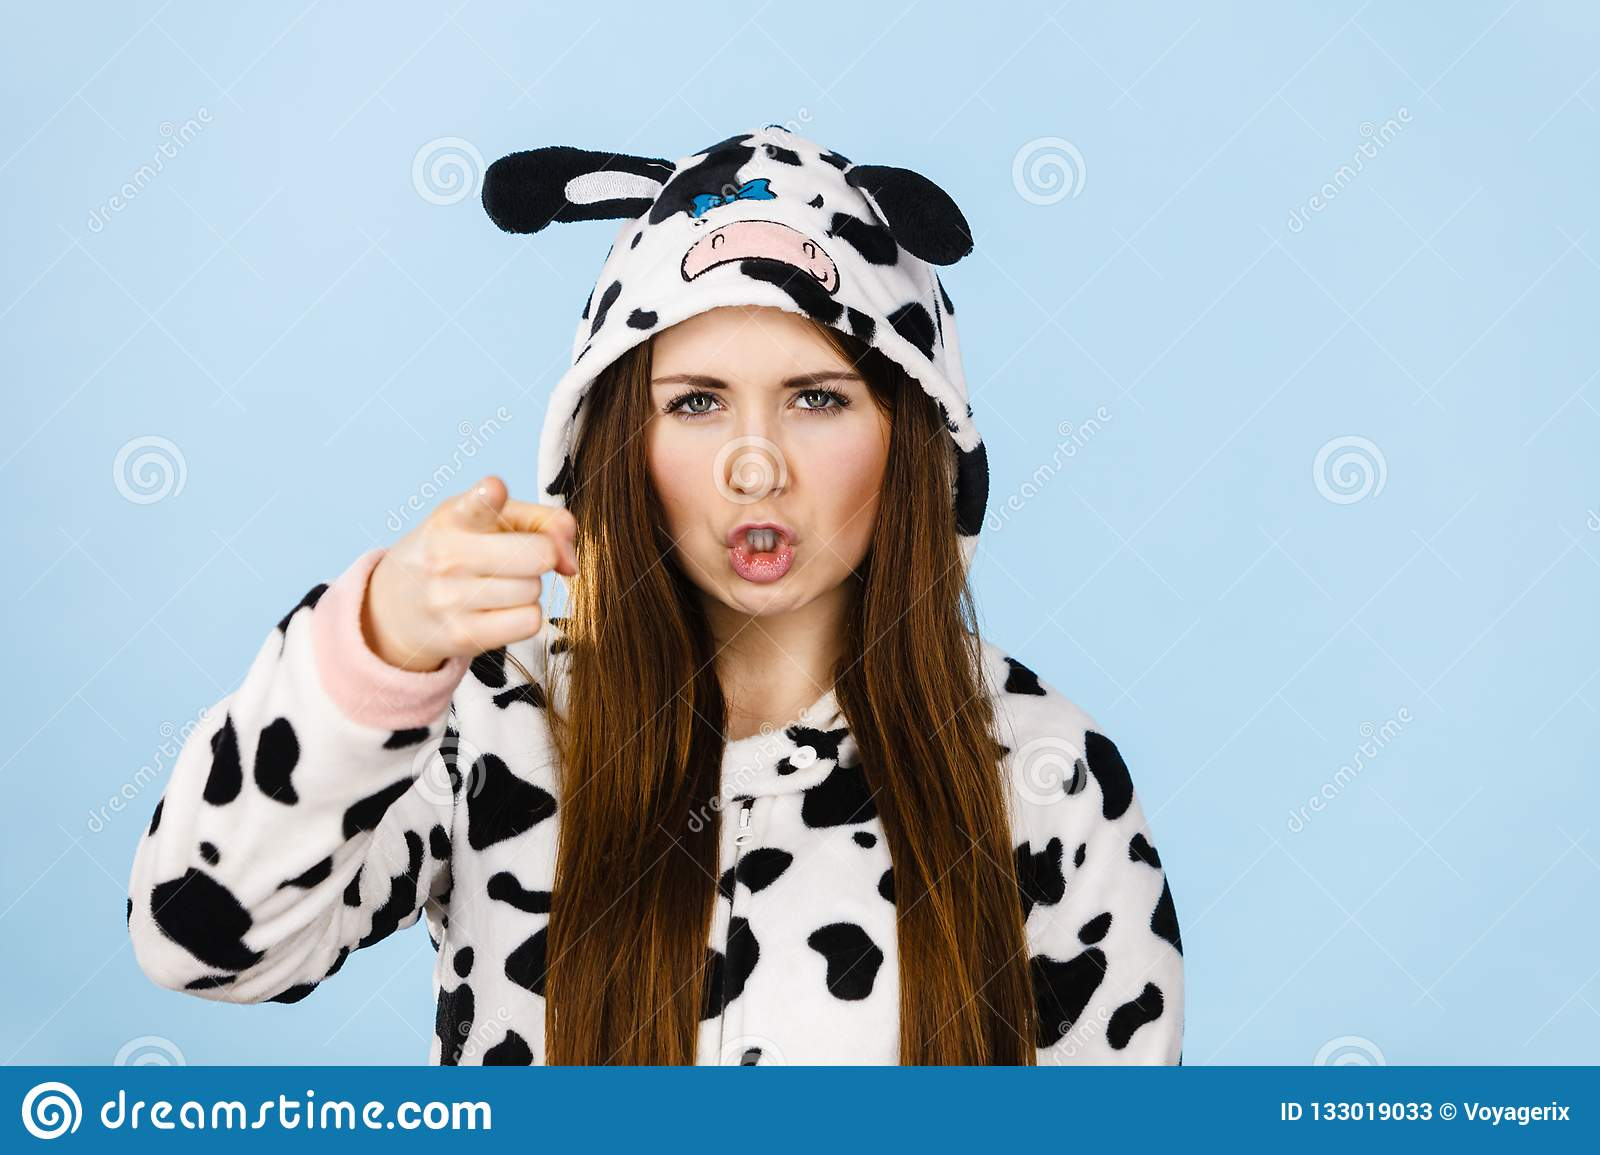 221 Angry Cartoon Girl Photos Free Royalty Free Stock Photos From Dreamstime